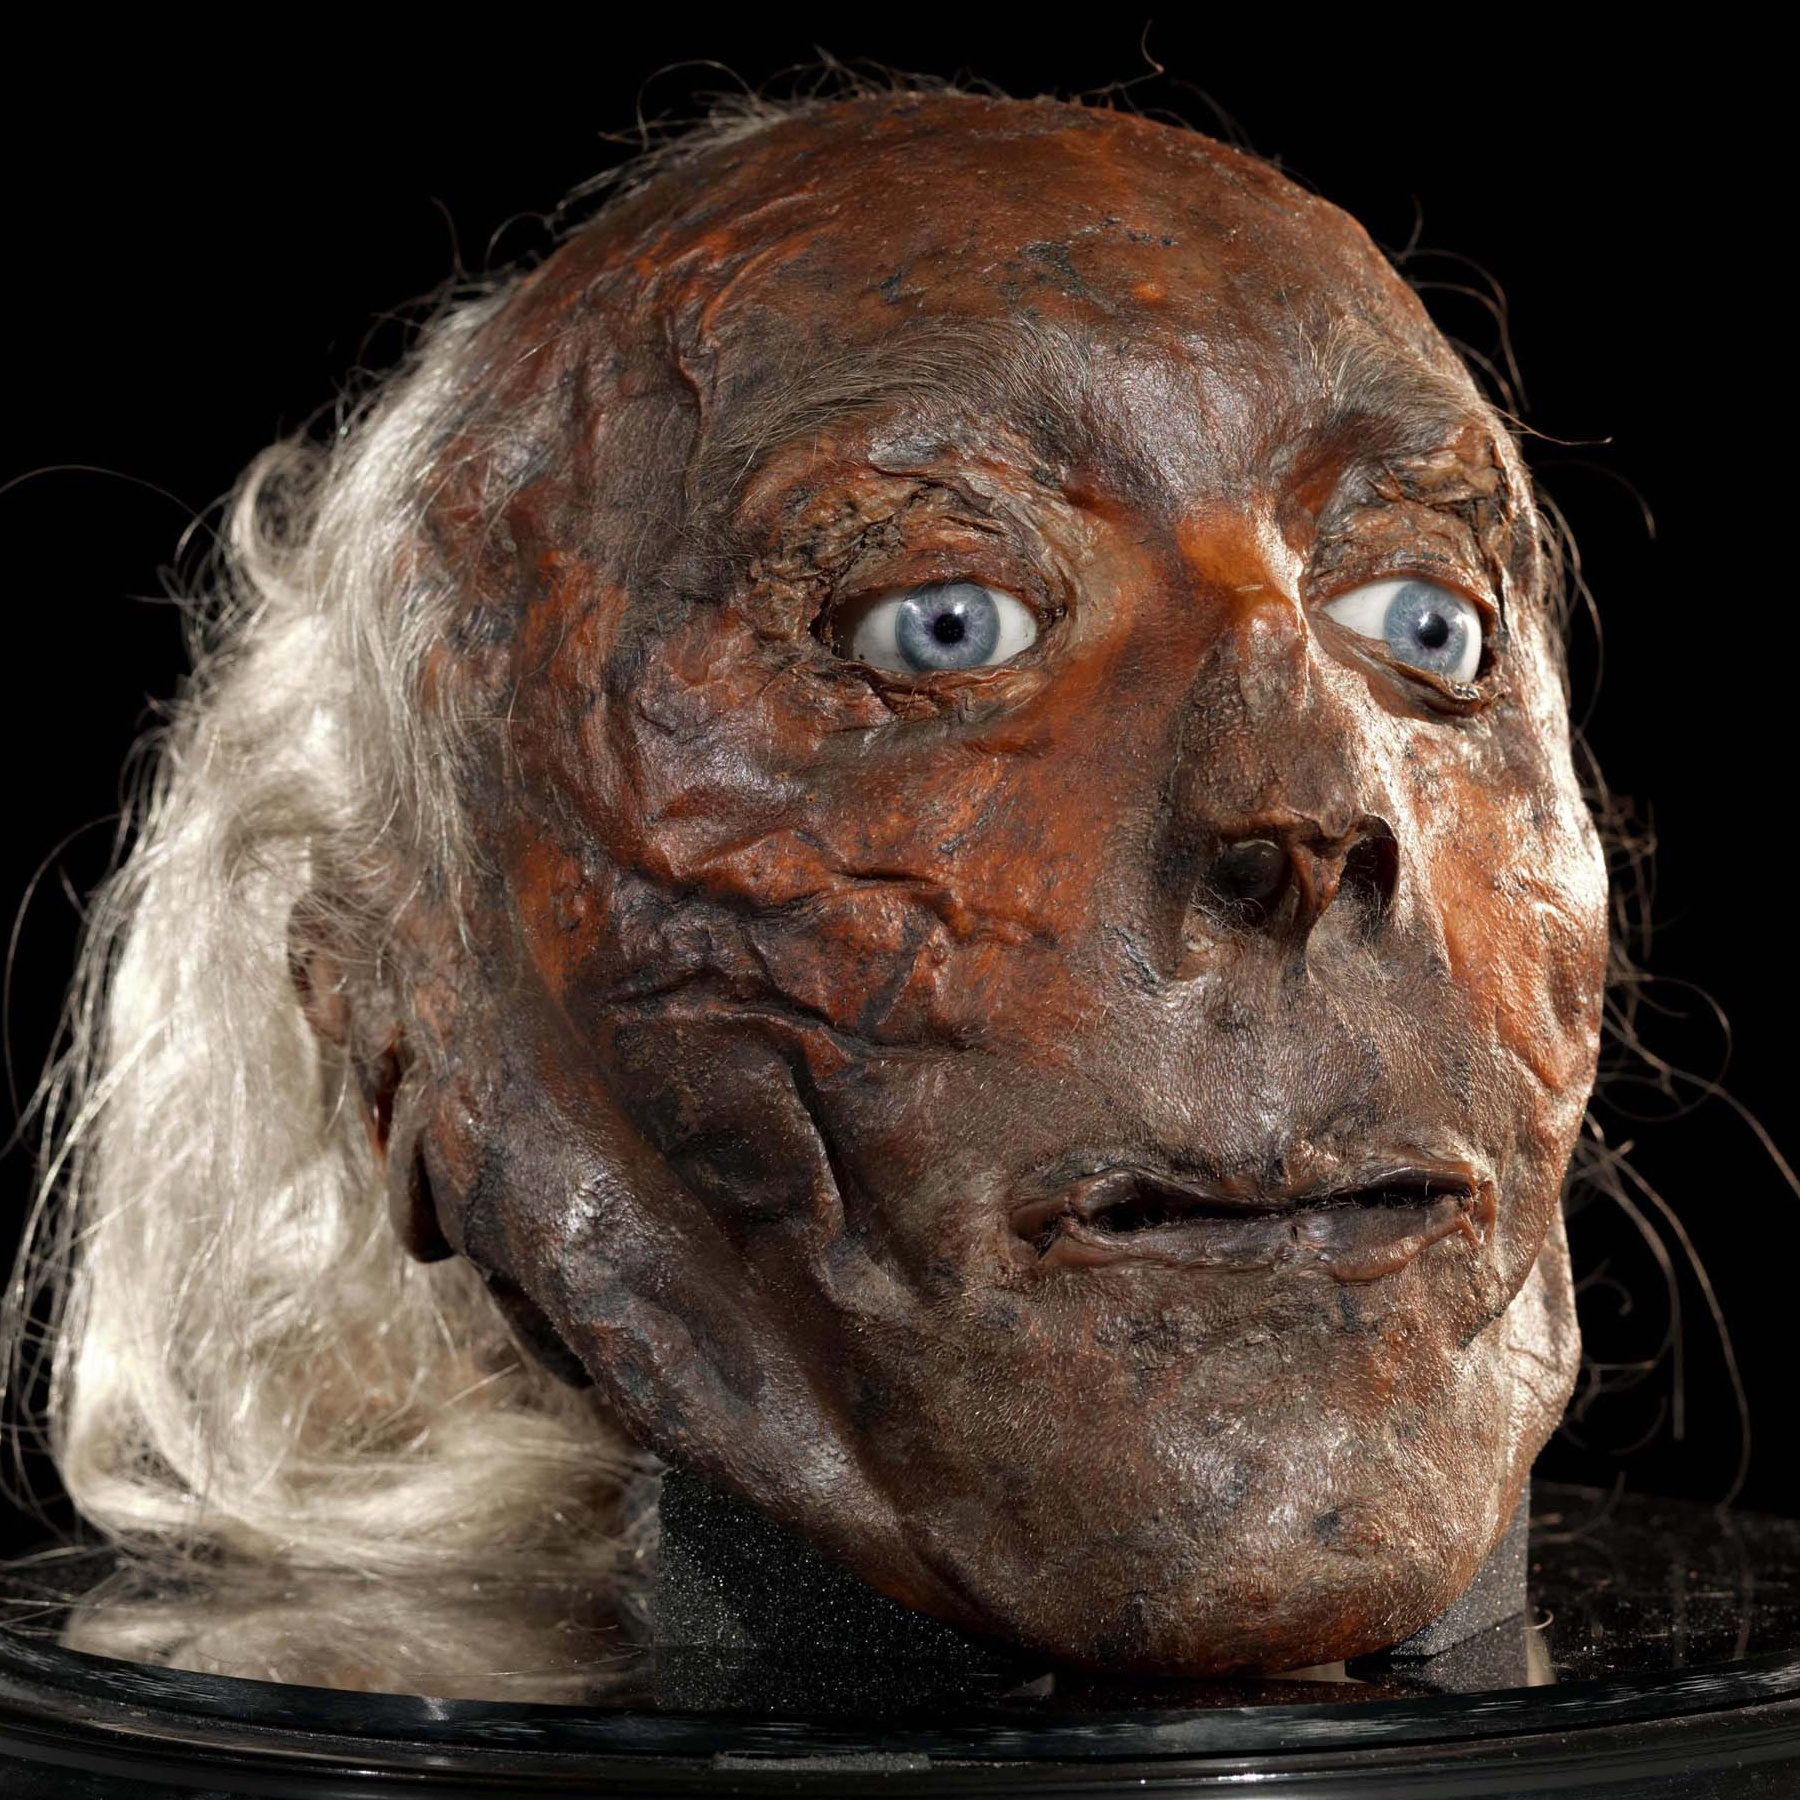 Colour photo of Jeremy Bentham's preserved head on a mount